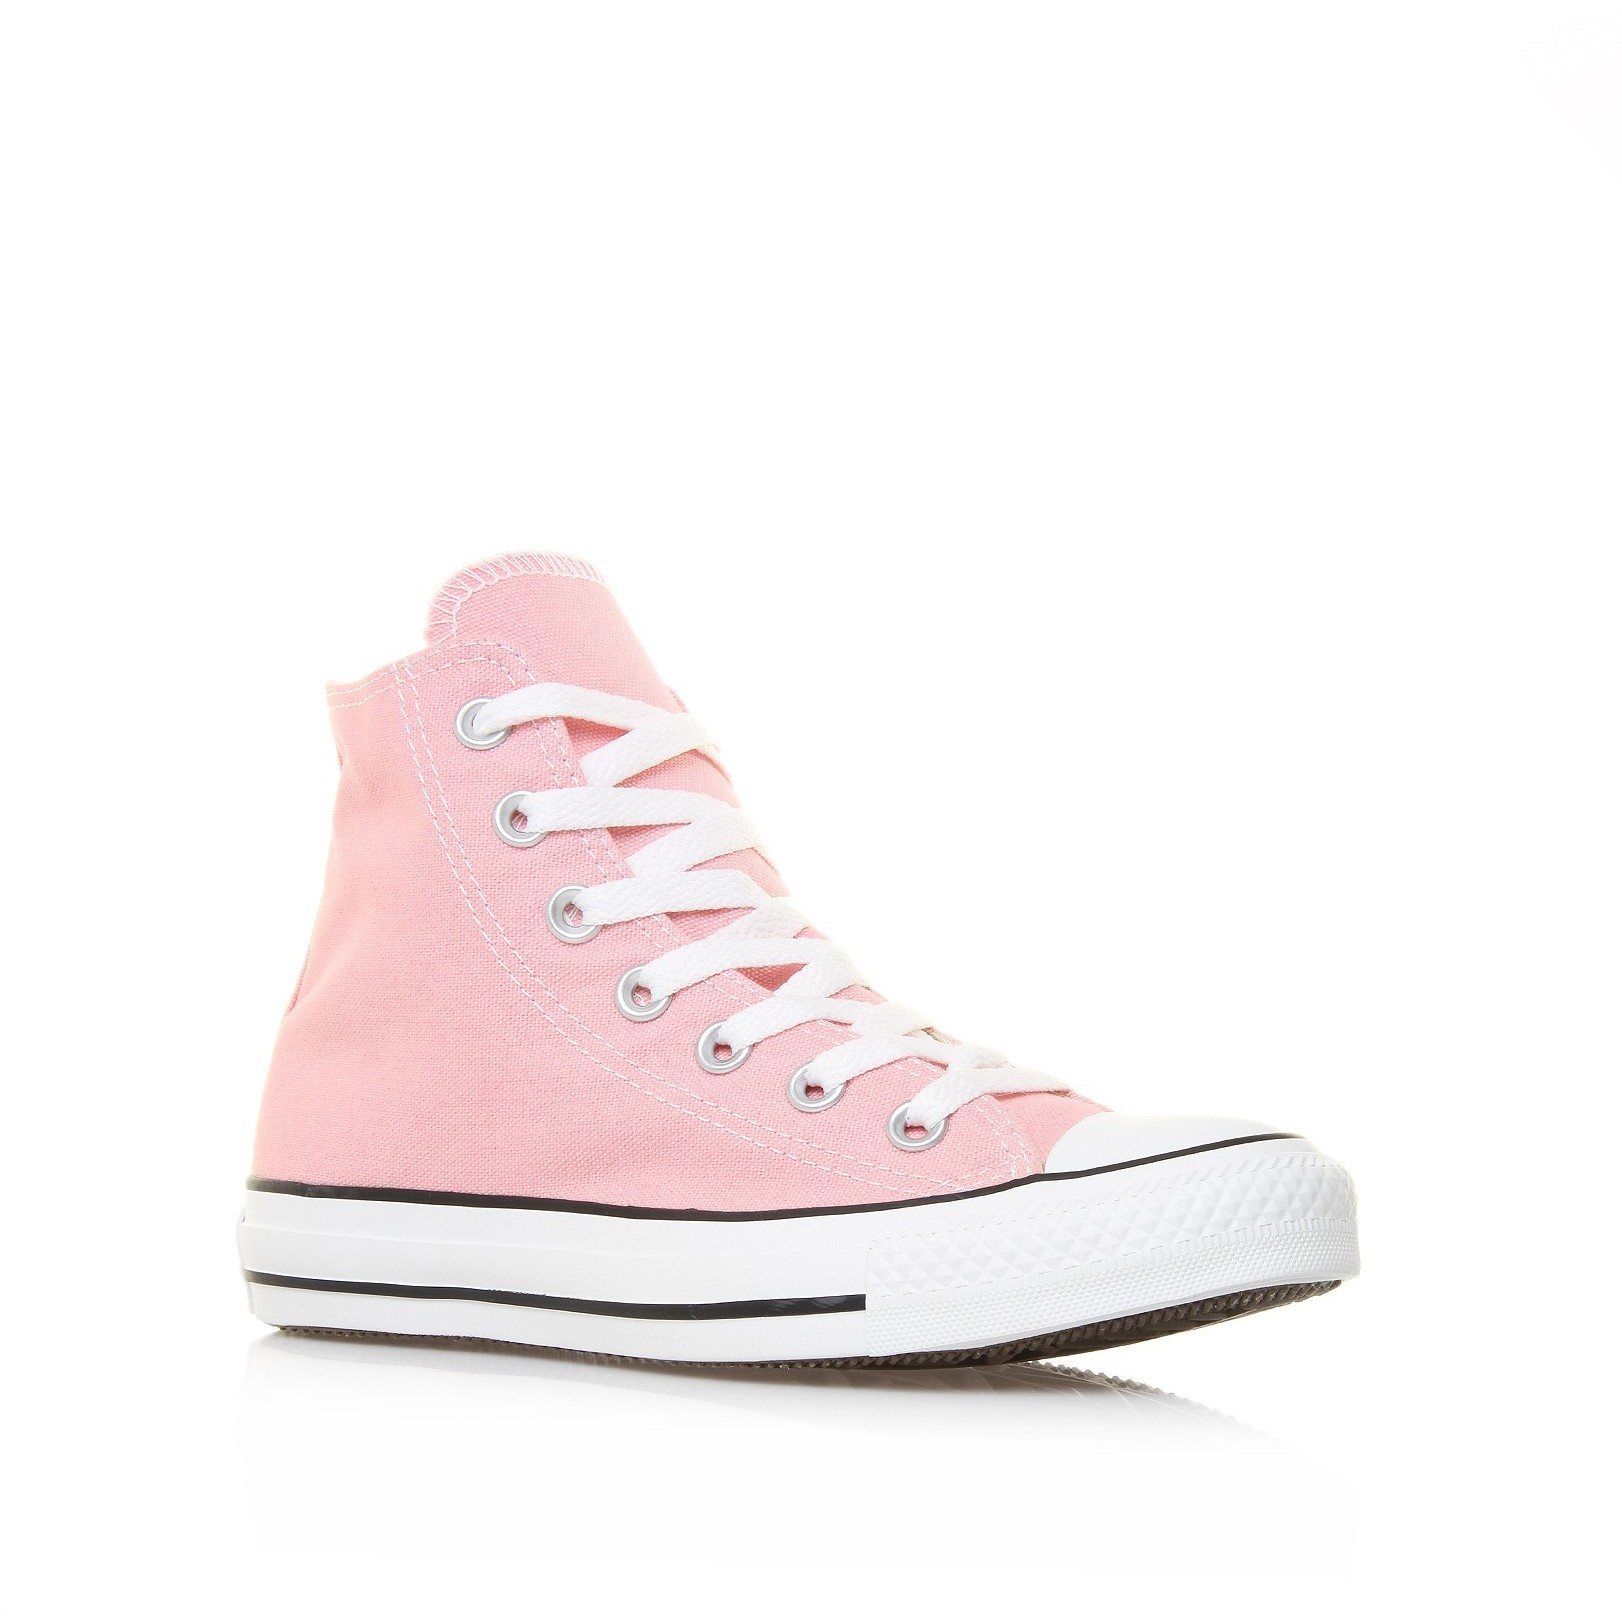 Kurt Geiger |  CHUCK TAYLOR ALL STAR HI